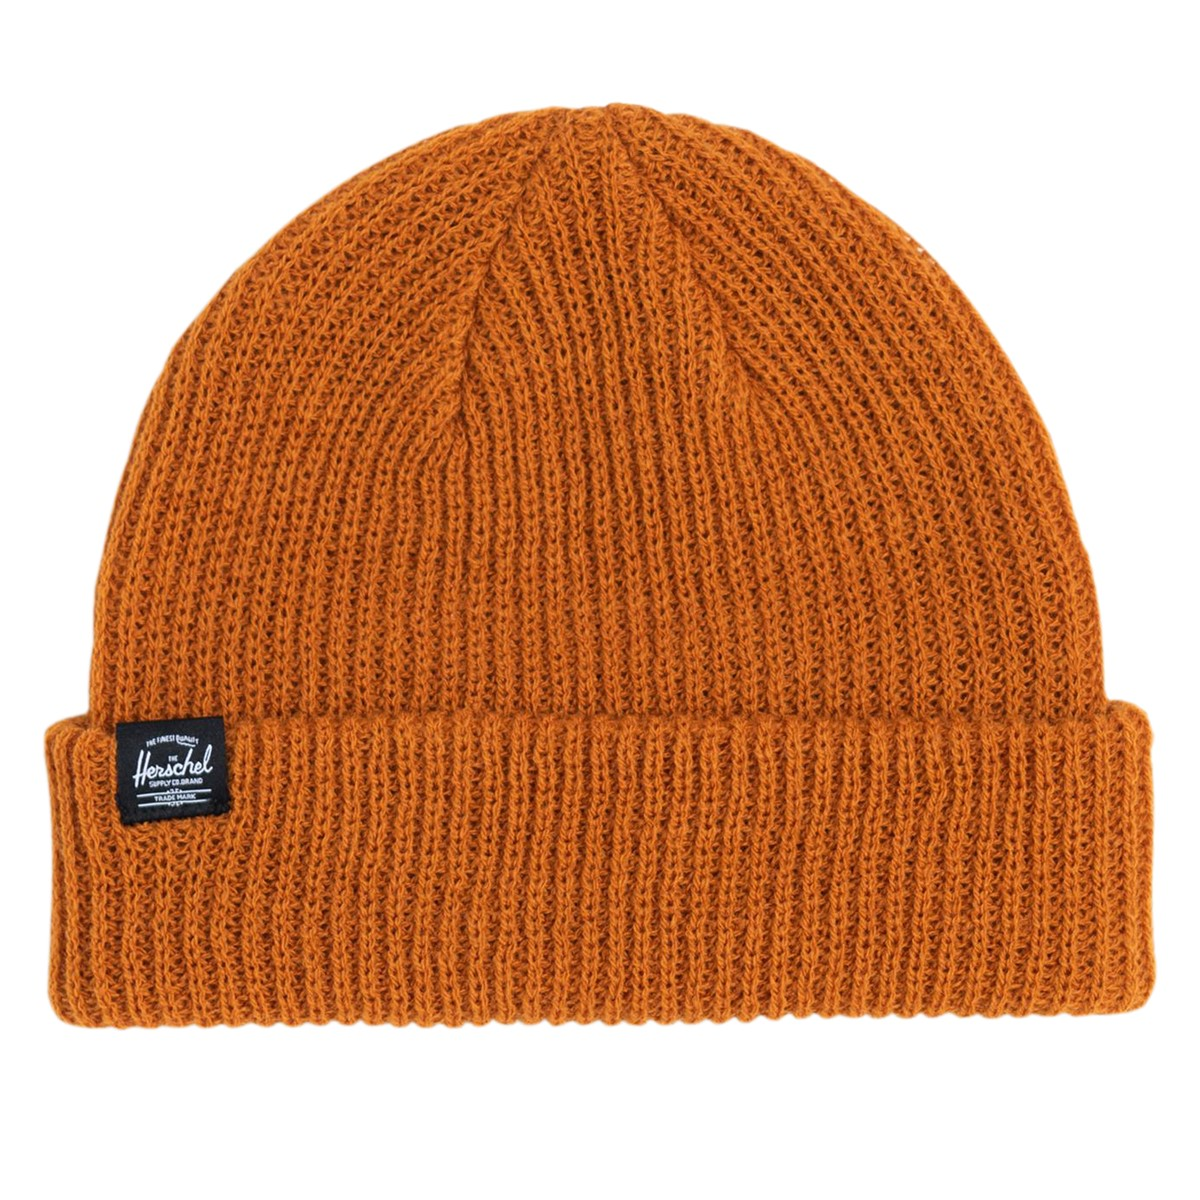 Watch Beanie in Dark Orange